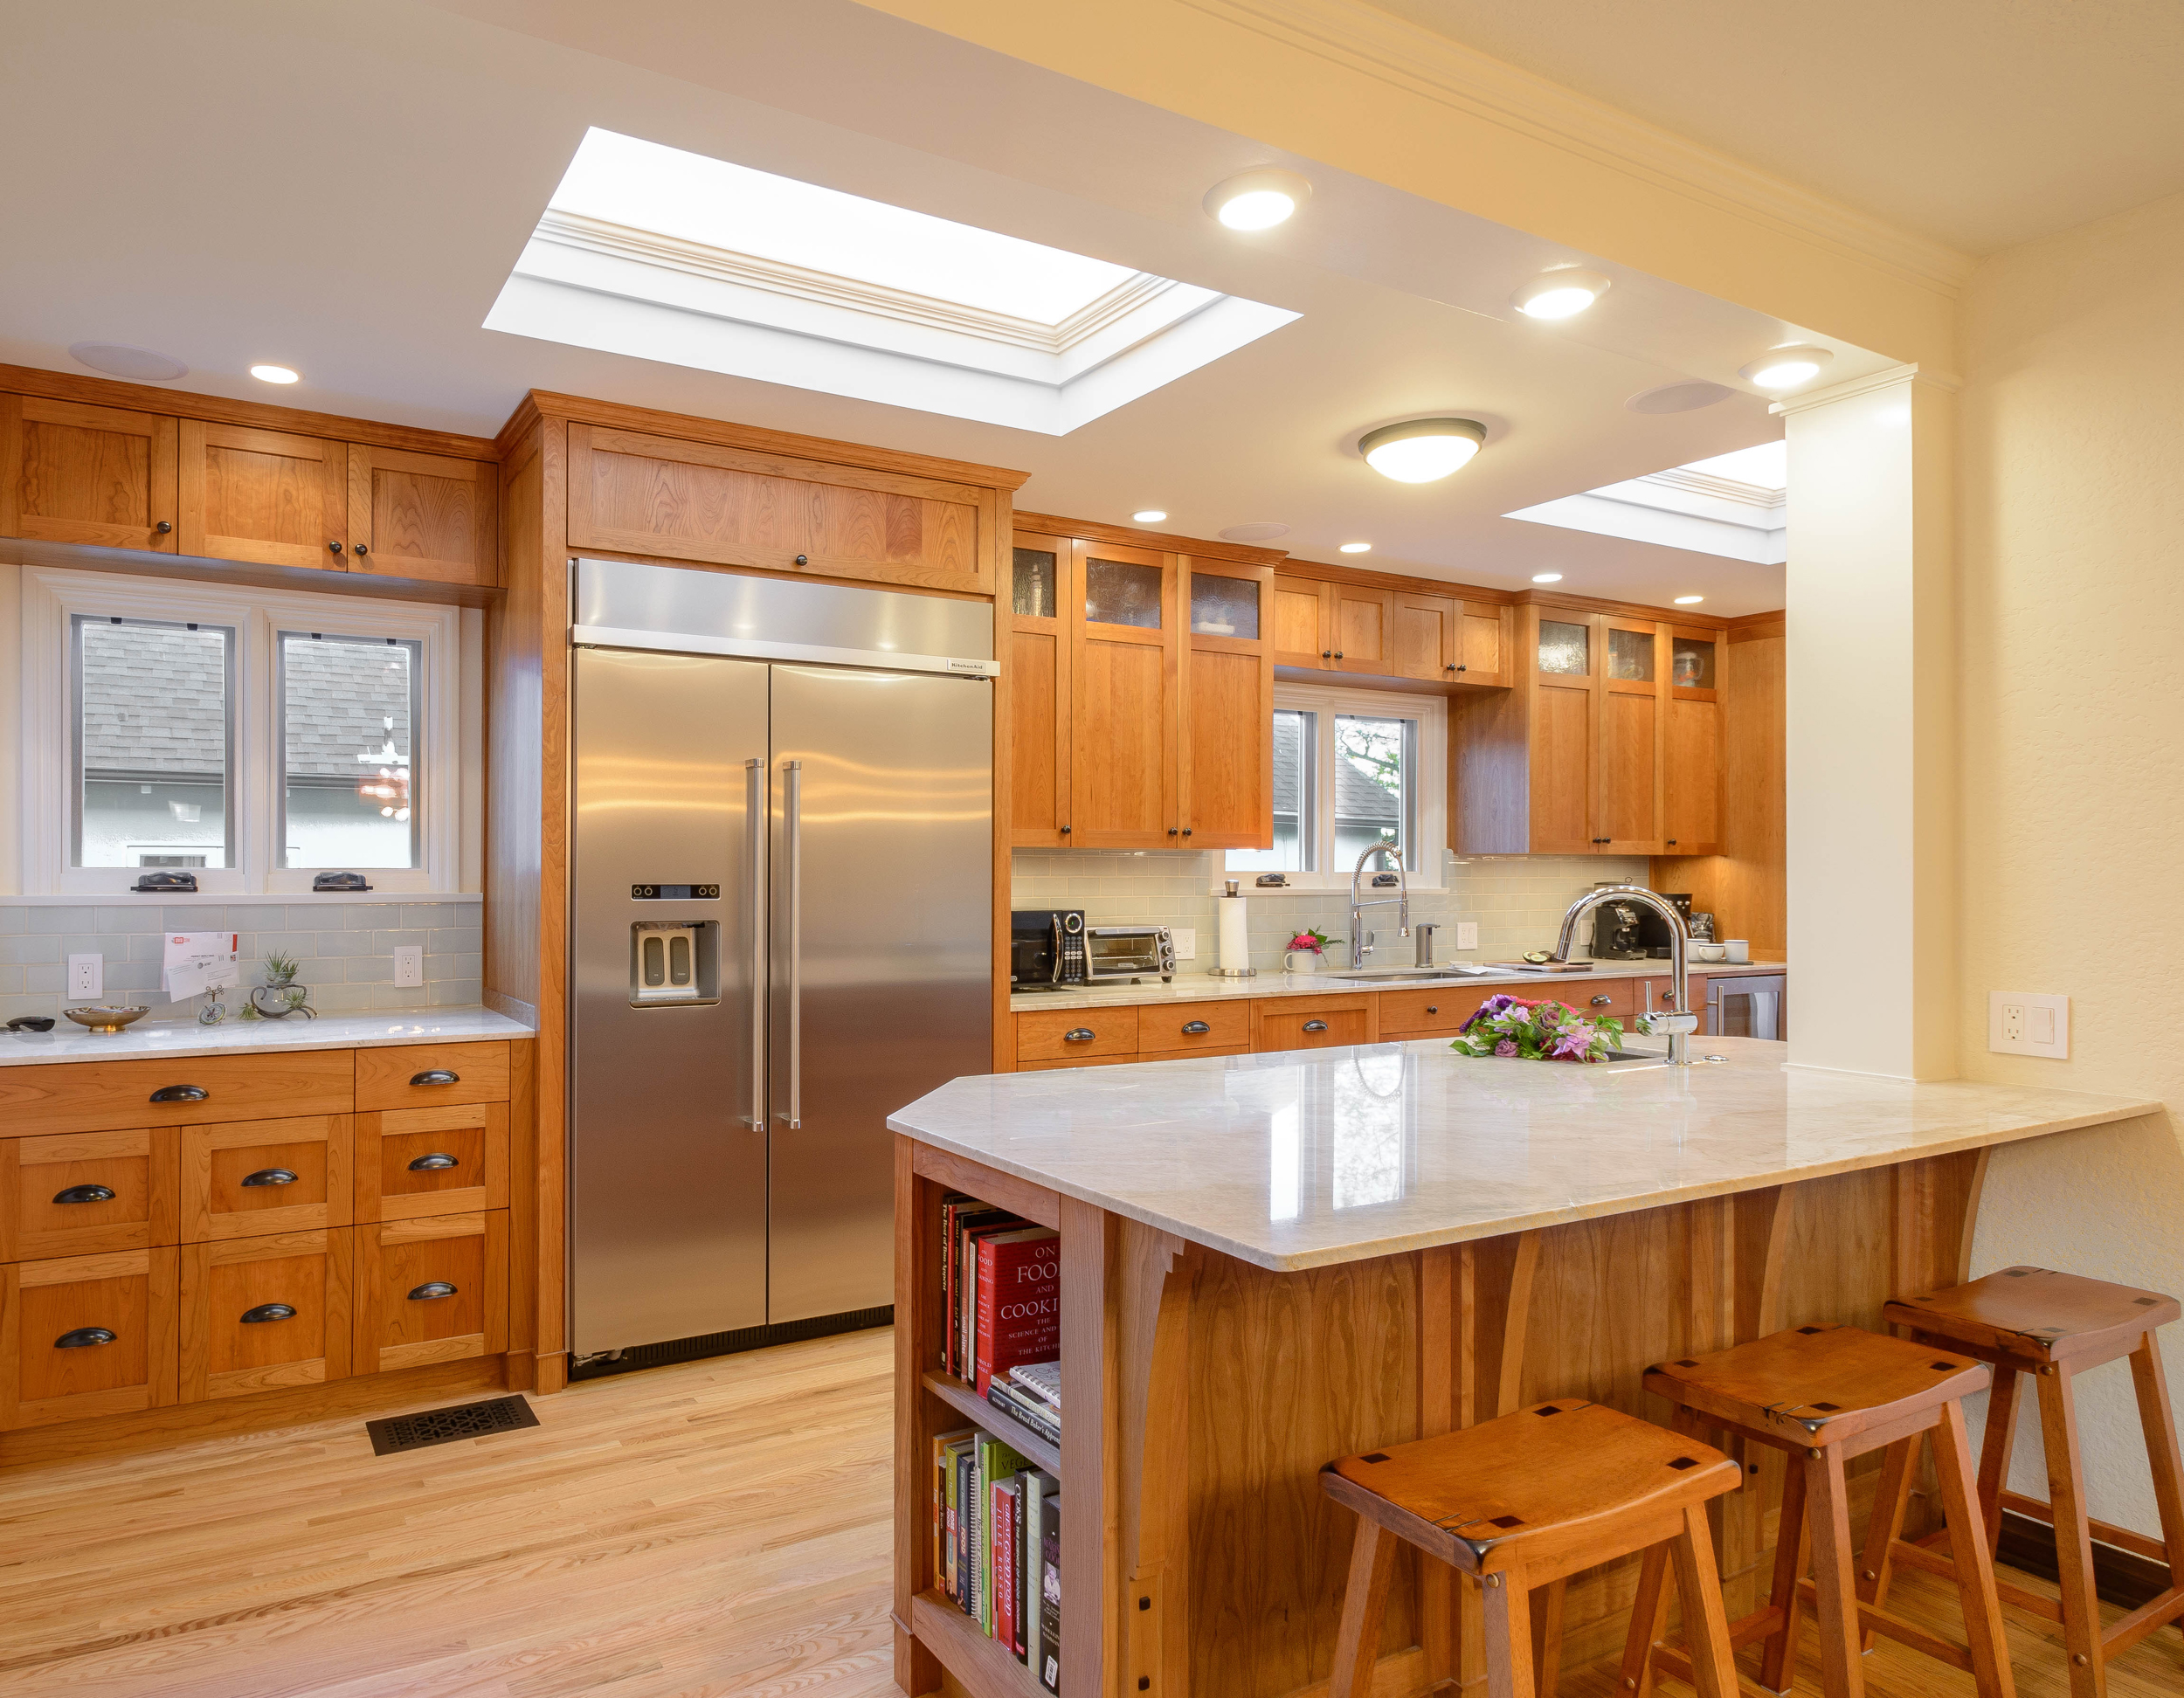 Tudor-Kitchen-Remodel-Cherry-Cabinets-Peninsula-White-Stone-Counter-Skylight.jpg